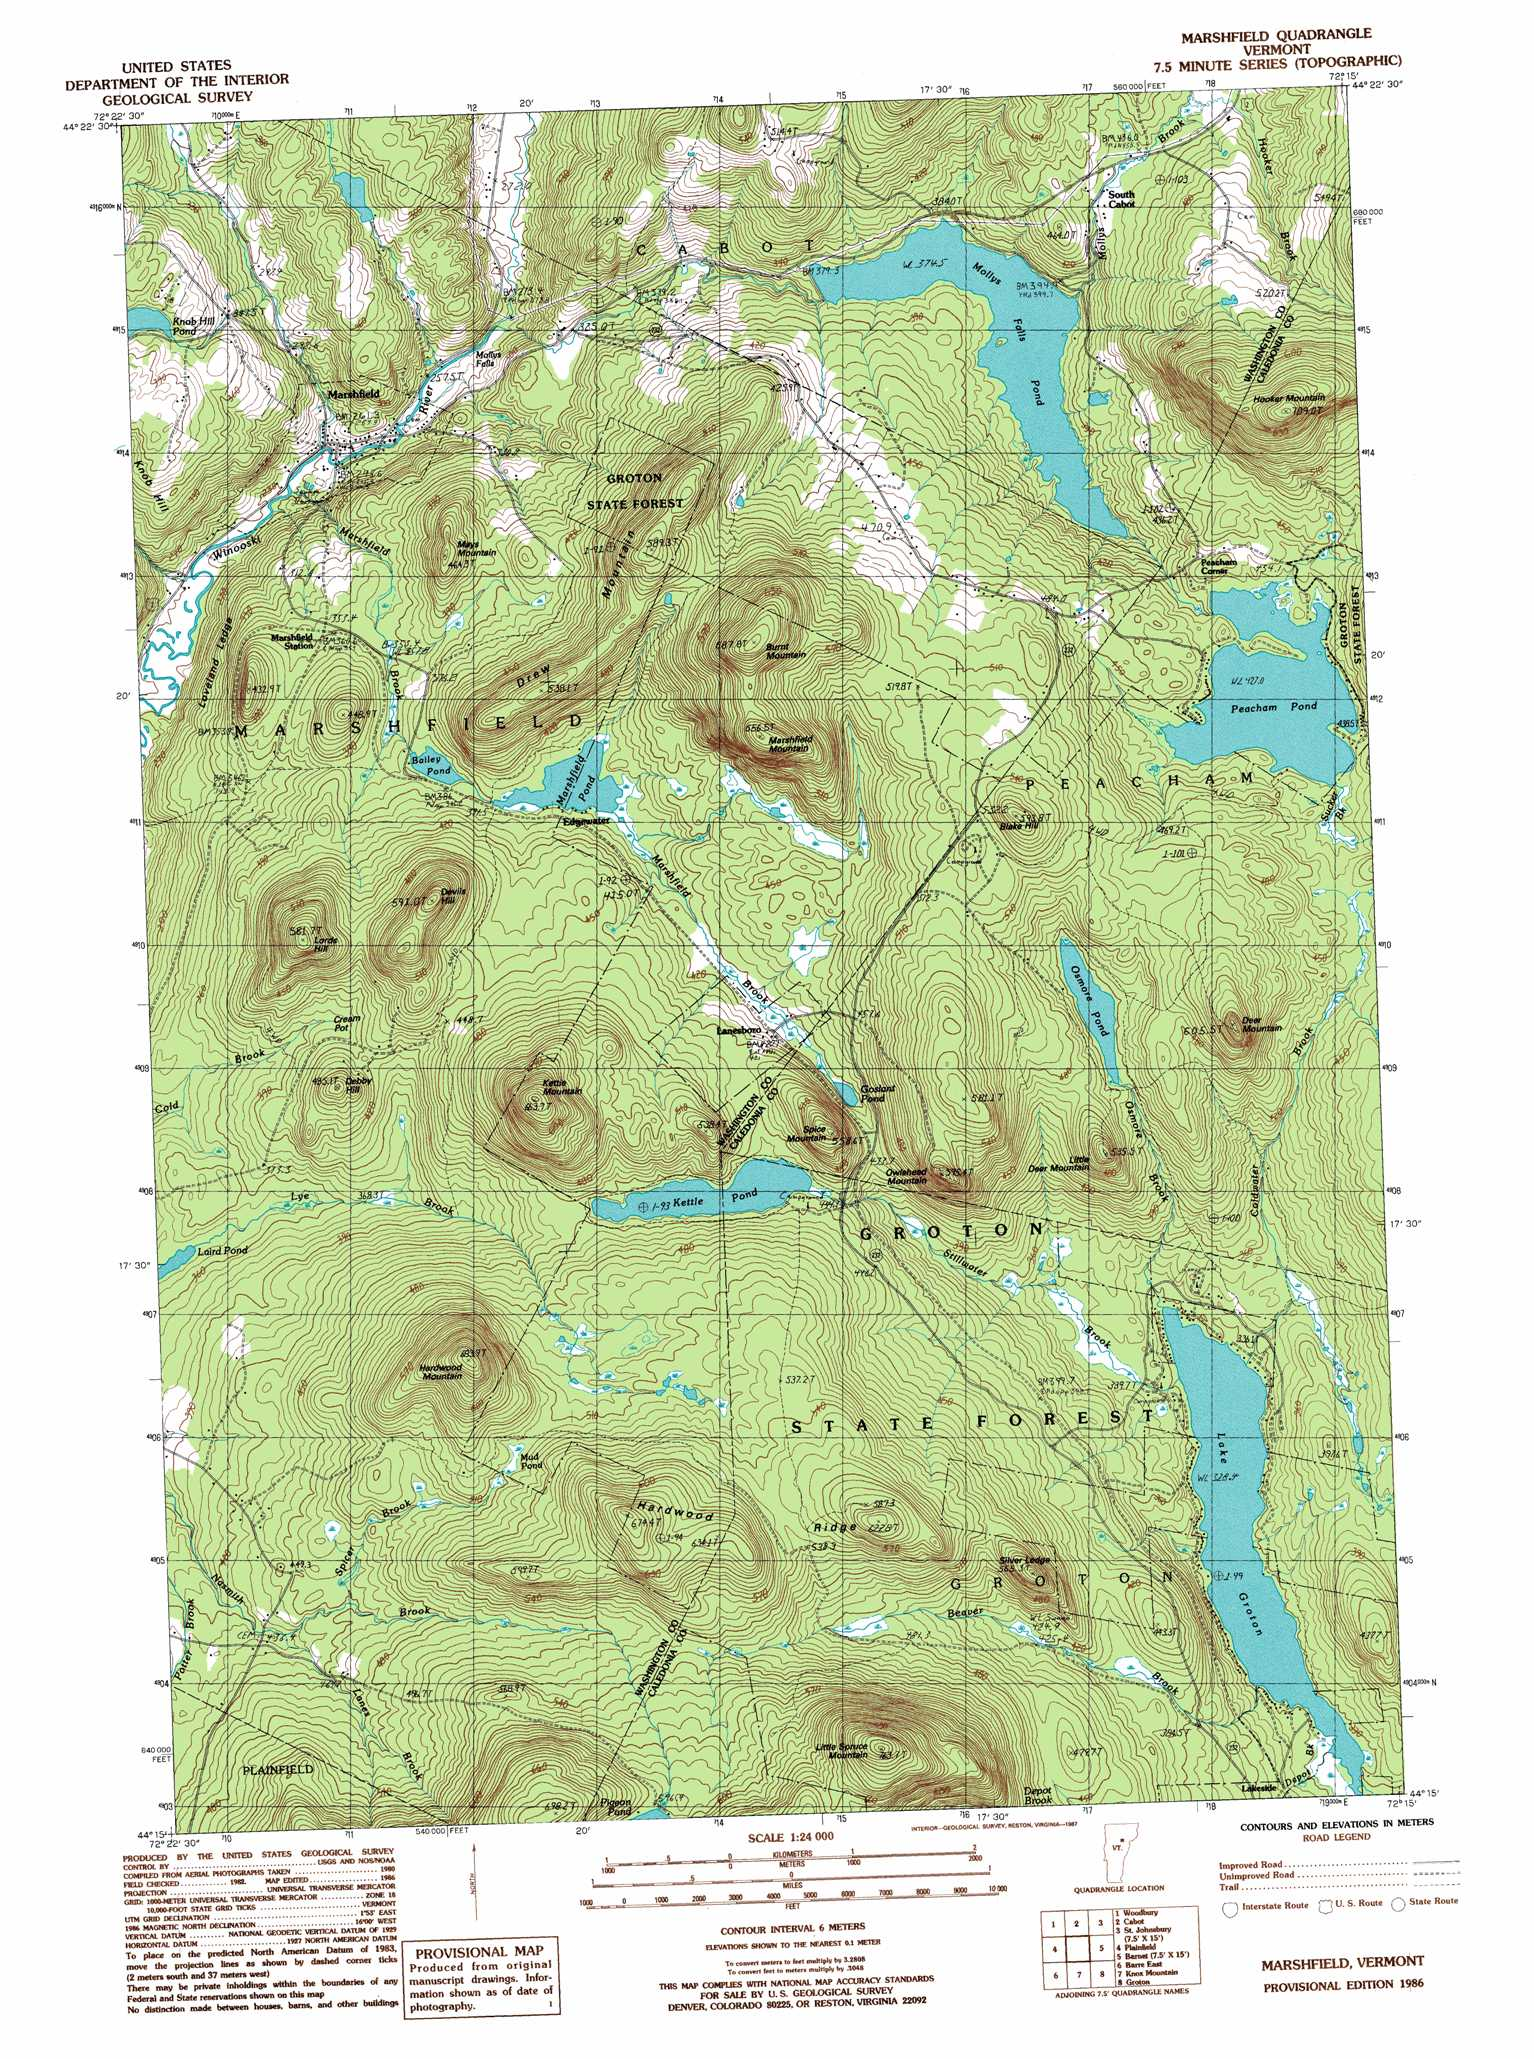 white mountains alaska trail map with 44072c3 on Trailmap together with 154294 together with Best C grounds In Arizona besides Christopher mccandless 089 likewise Usa.